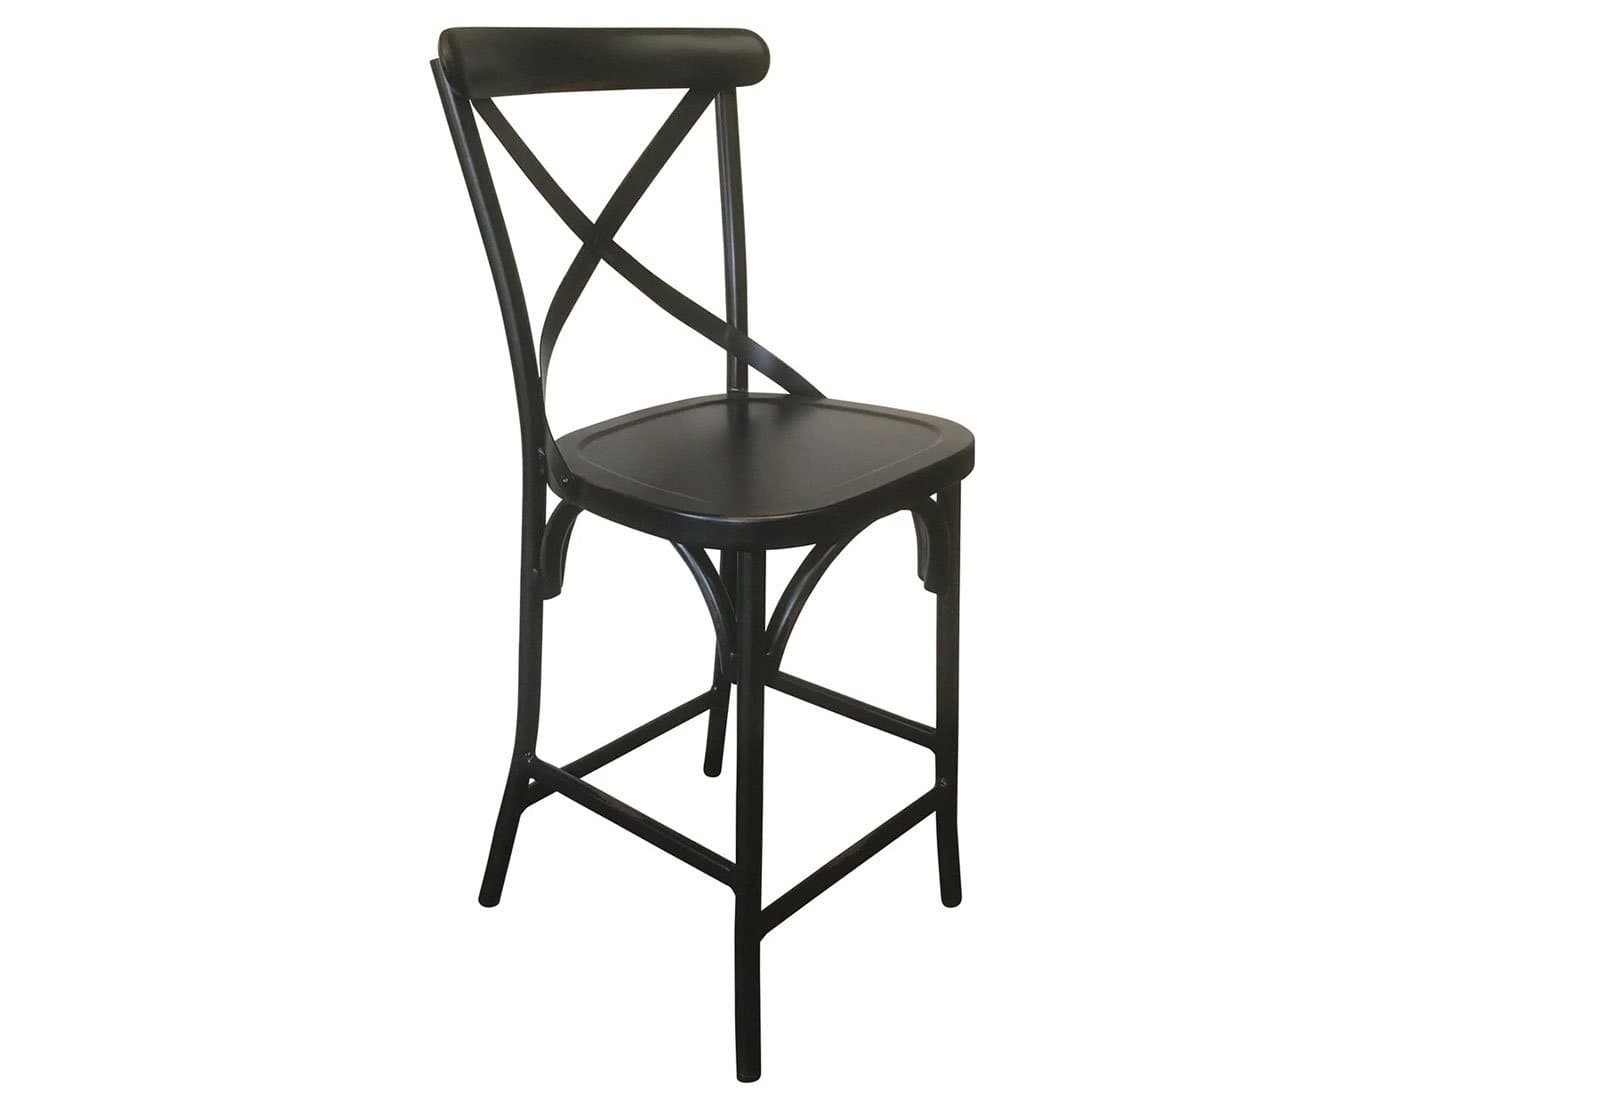 Admirable Outdoor French Provincial Cross Back Bar Stool Shabby Chic Finish Vintage Black Machost Co Dining Chair Design Ideas Machostcouk